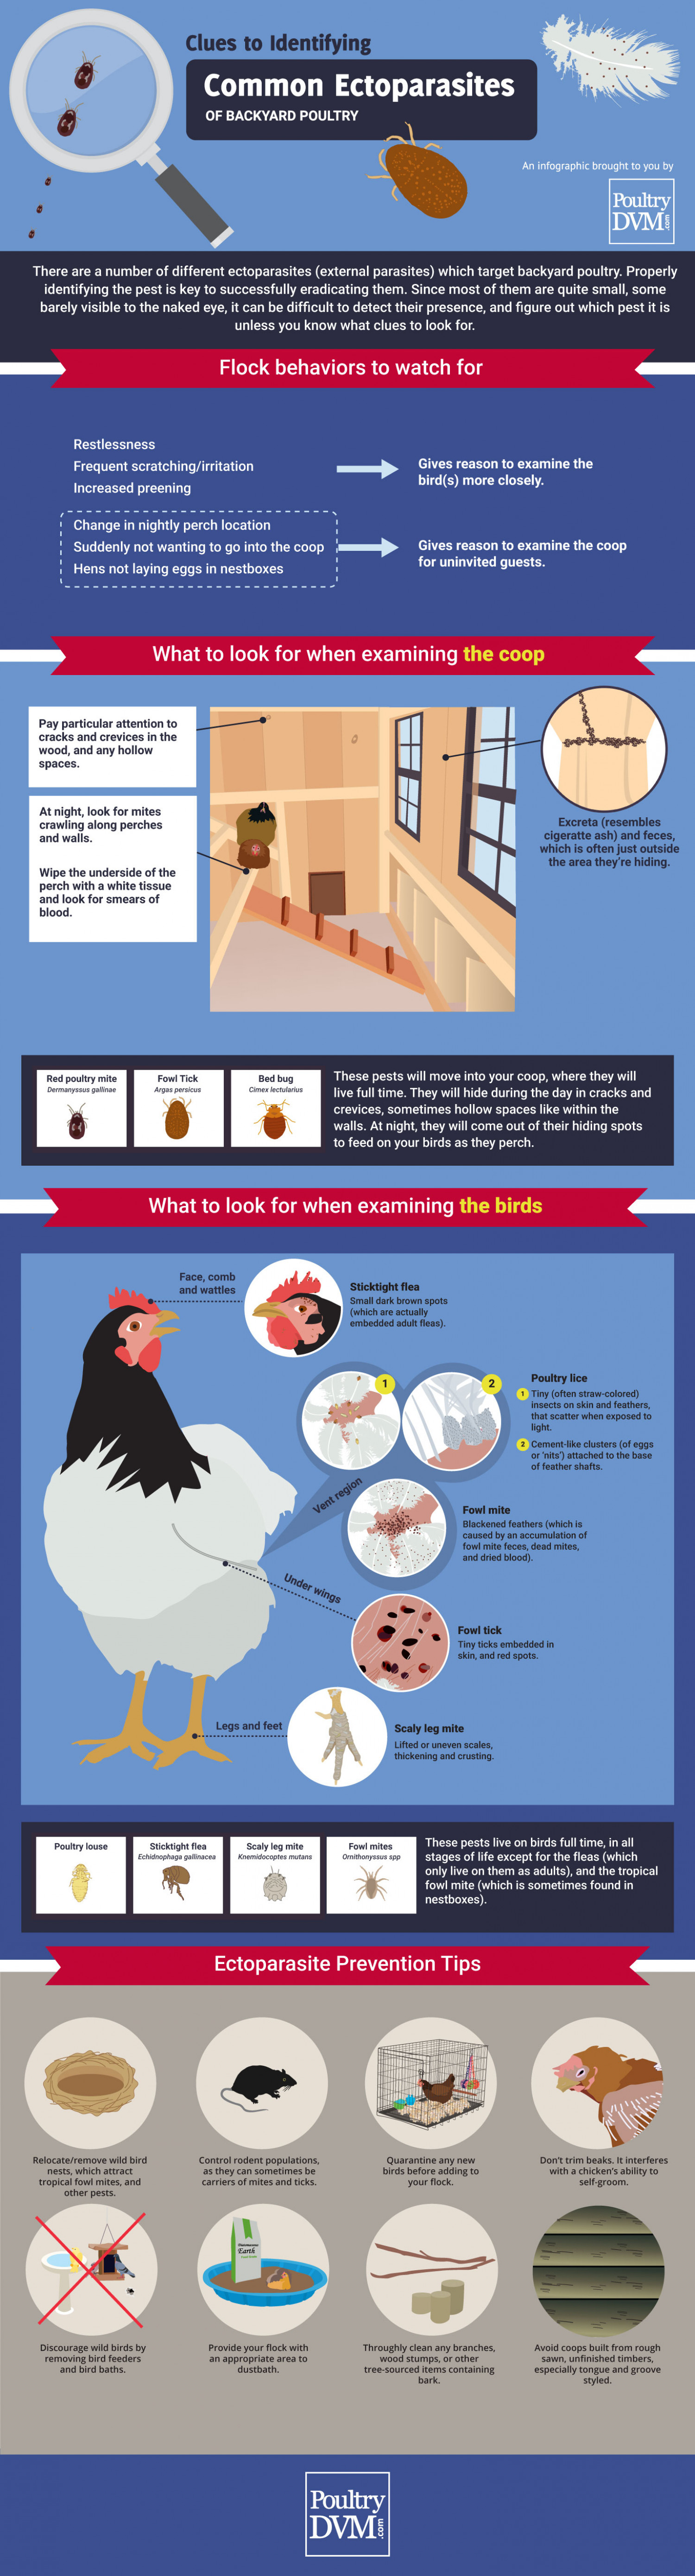 Clues to Identifying Common Ectoparasites of Backyard Poultry Infographic